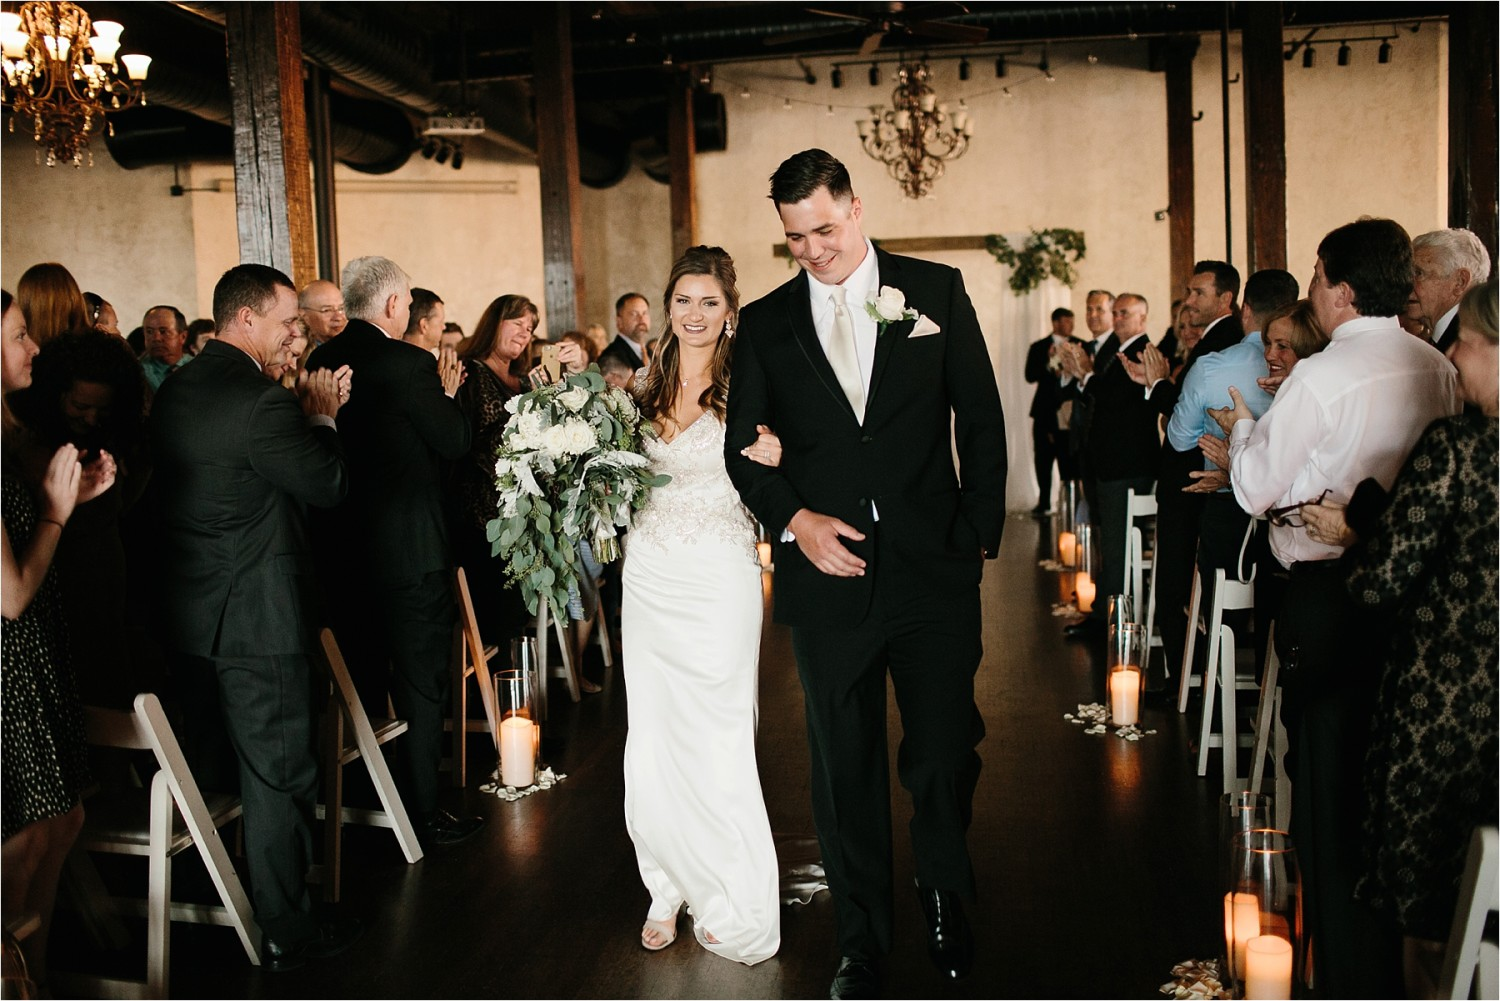 Holly + Jordan __ a black, gold, and greenery organic wedding at The Phoenix Ballroom in Waco, TX by North Texas Wedding Photographer Rachel Meagan Photography __ 66